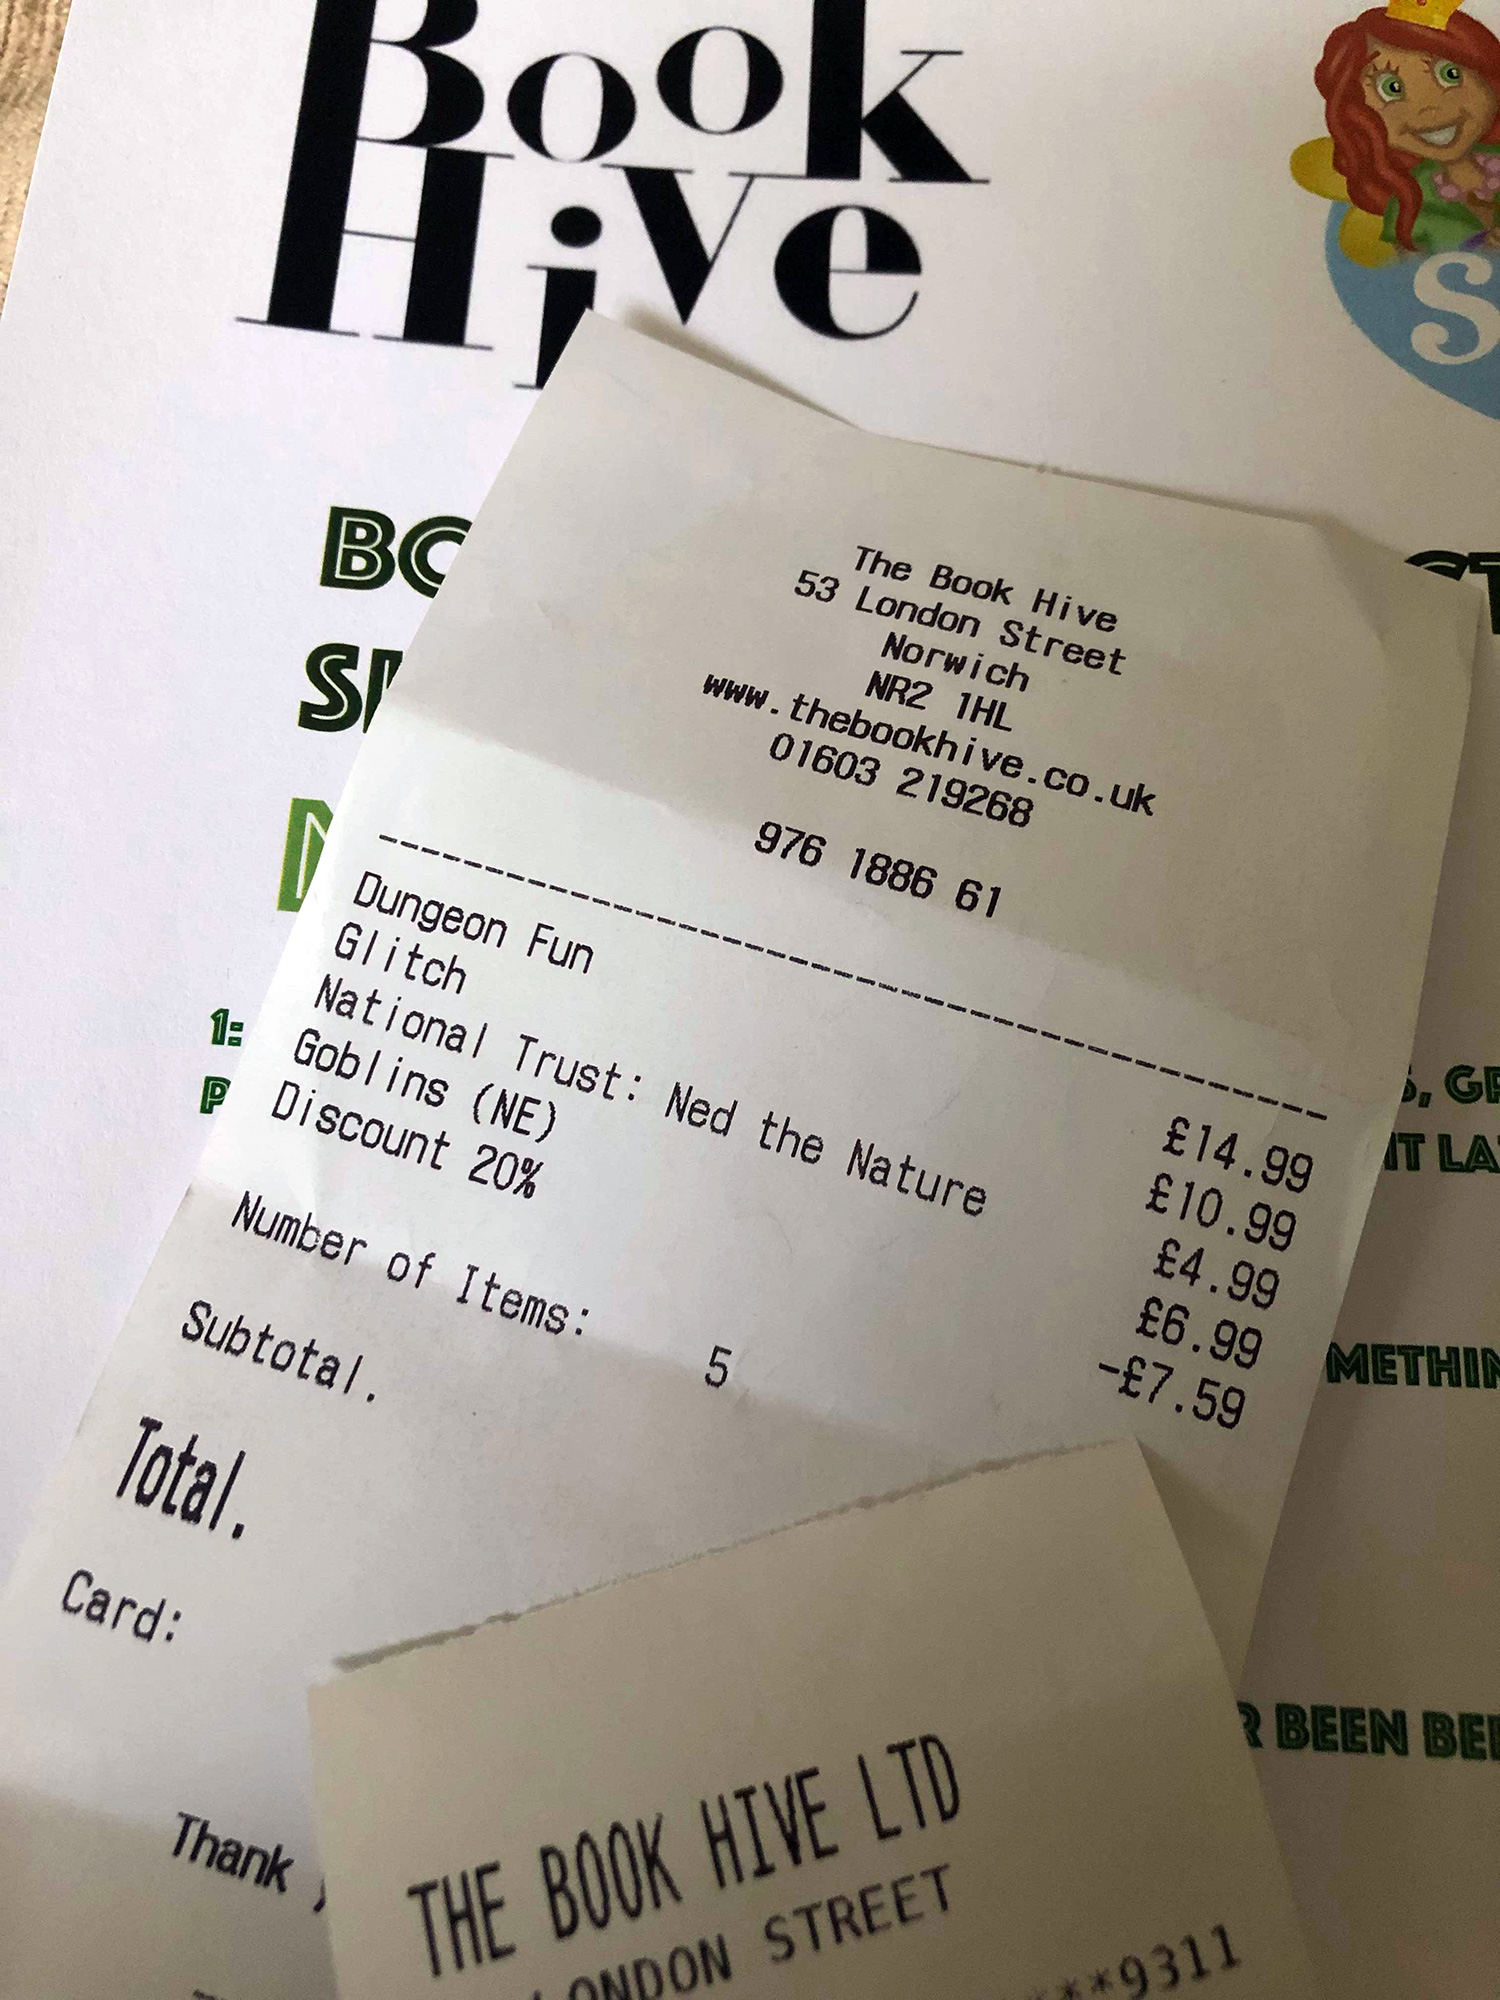 Discount from Card at Book Hive Norwich.